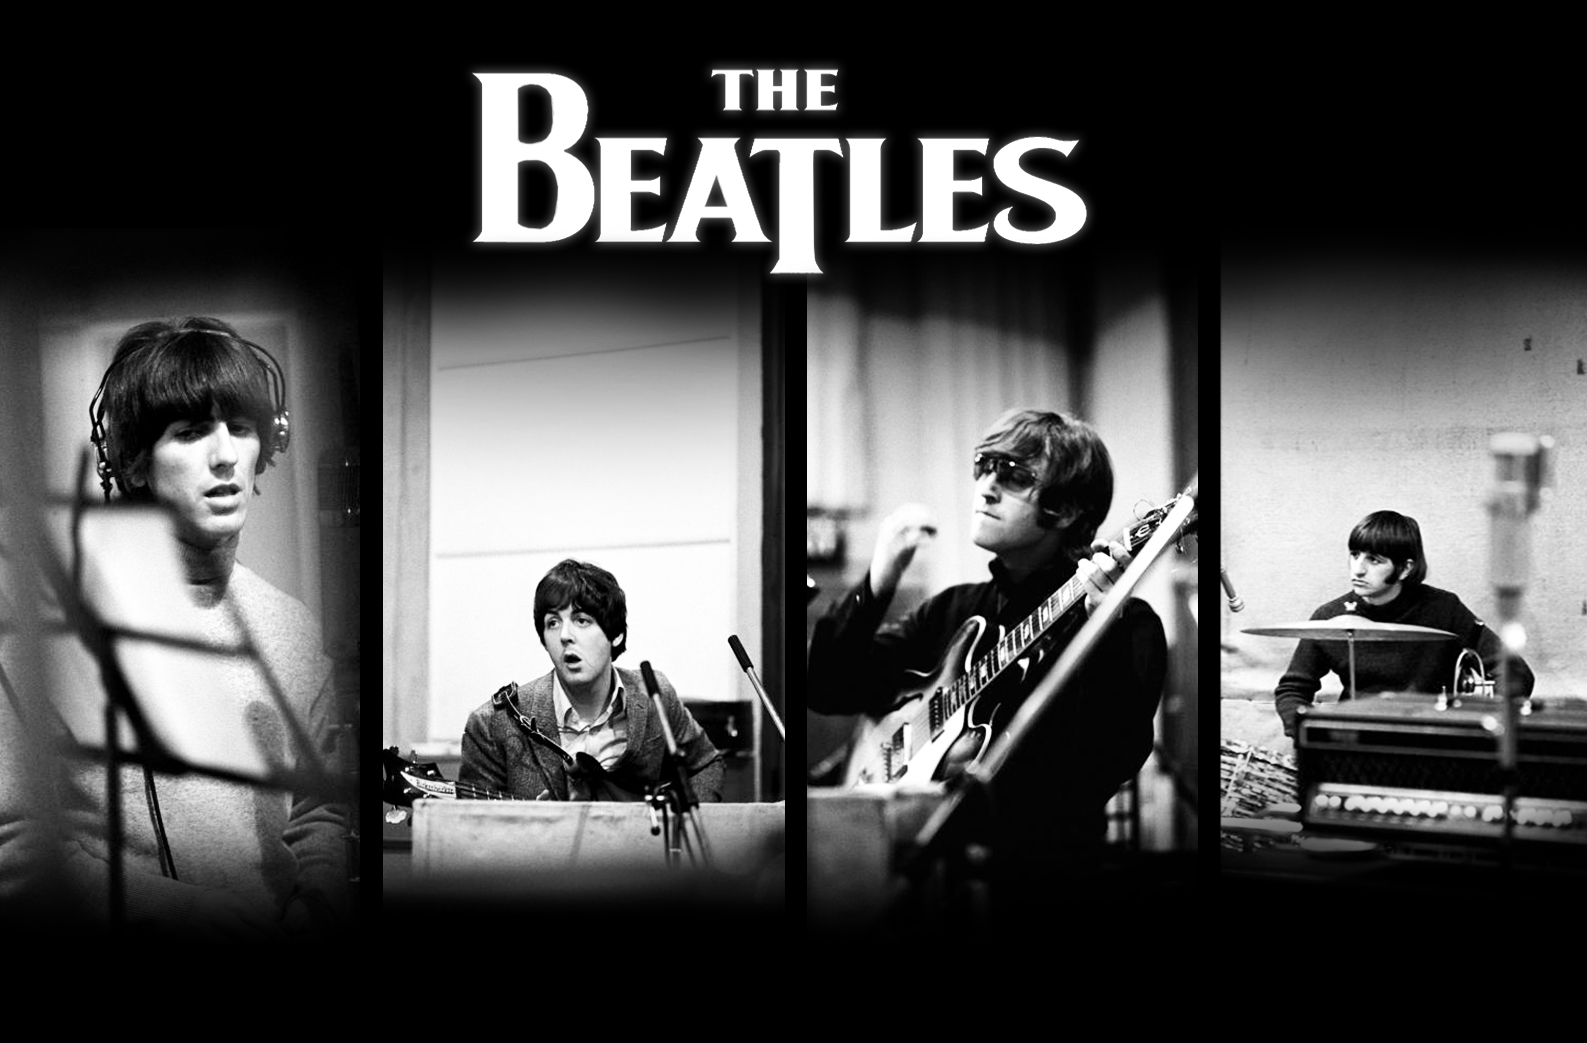 http://1.bp.blogspot.com/-n5CSq1fzmM0/UHCqT-3tSDI/AAAAAAAAAI8/kHSZDBWIVHI/s1600/the_beatles_wallpaper.jpg